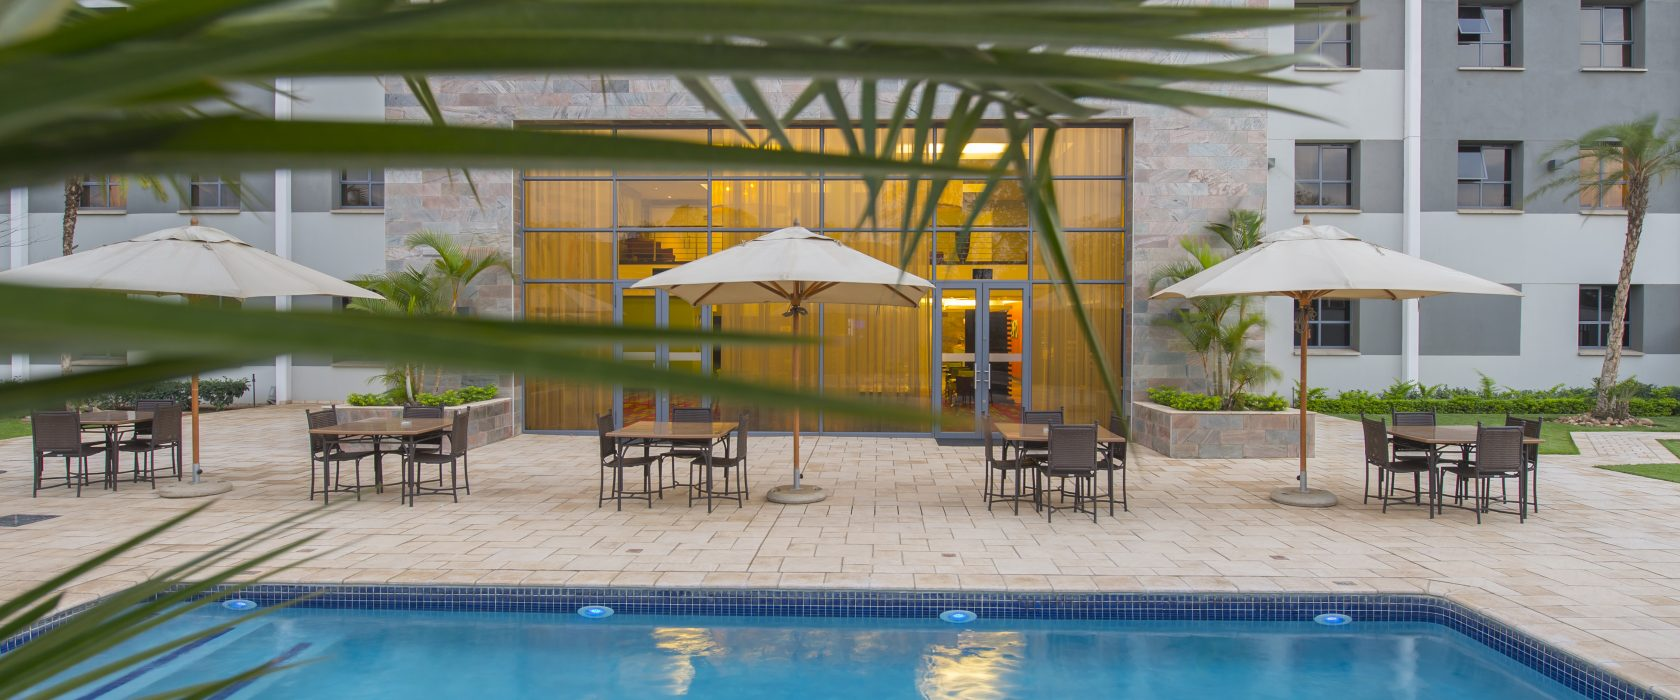 StayEasy Lusaka hotel pool area